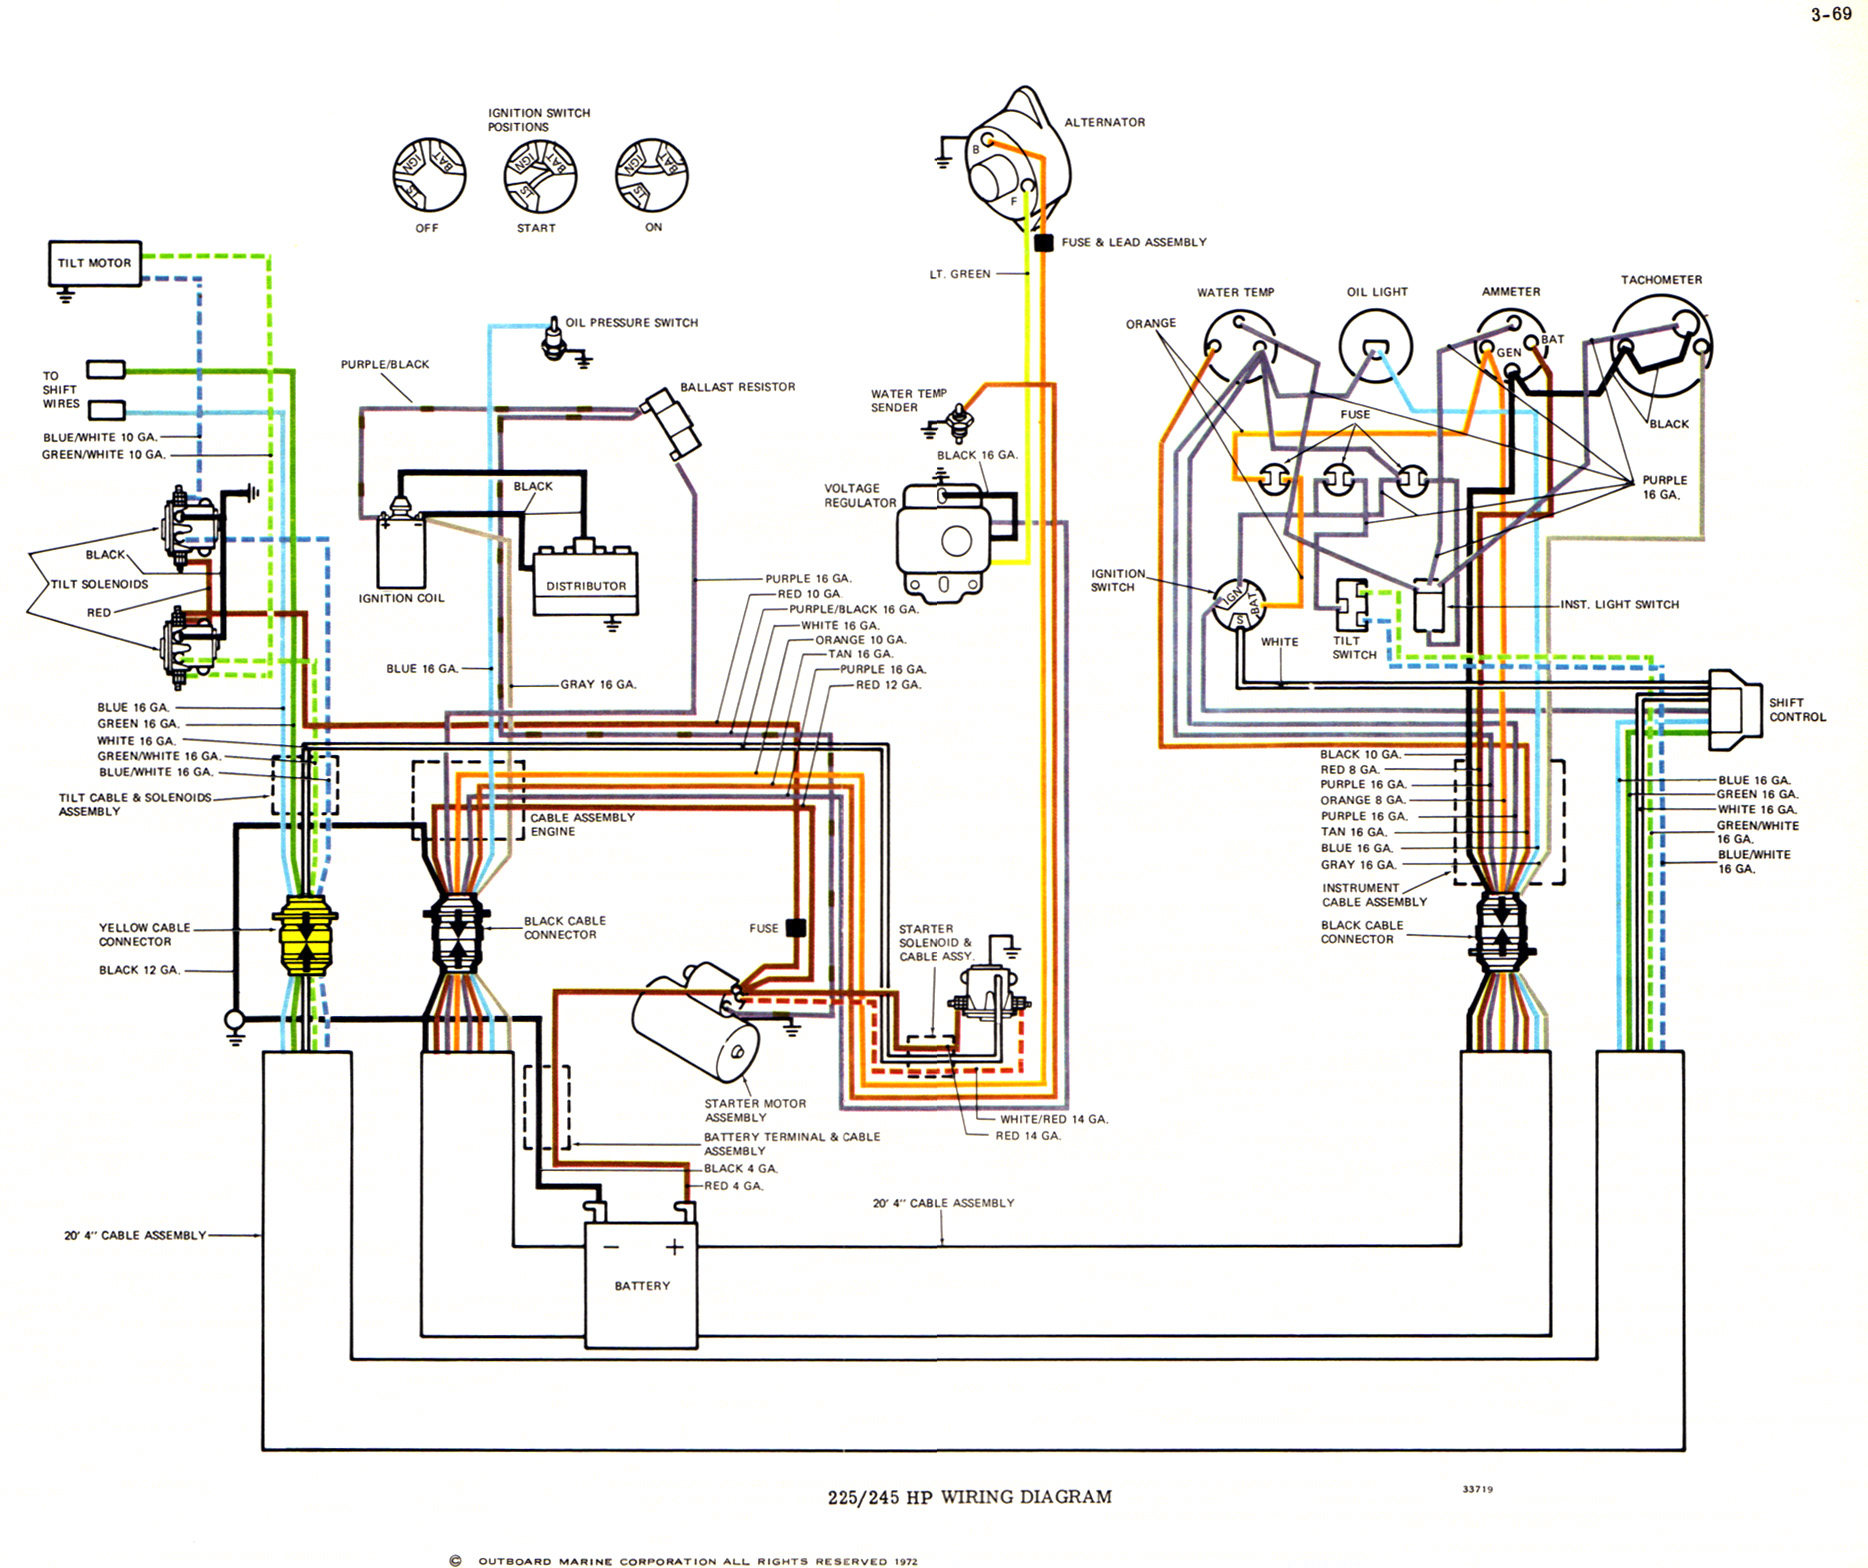 73_OMC_V8_all_big delco est ignition wiring diagram wiring 3 wire delco \u2022 wiring  at creativeand.co